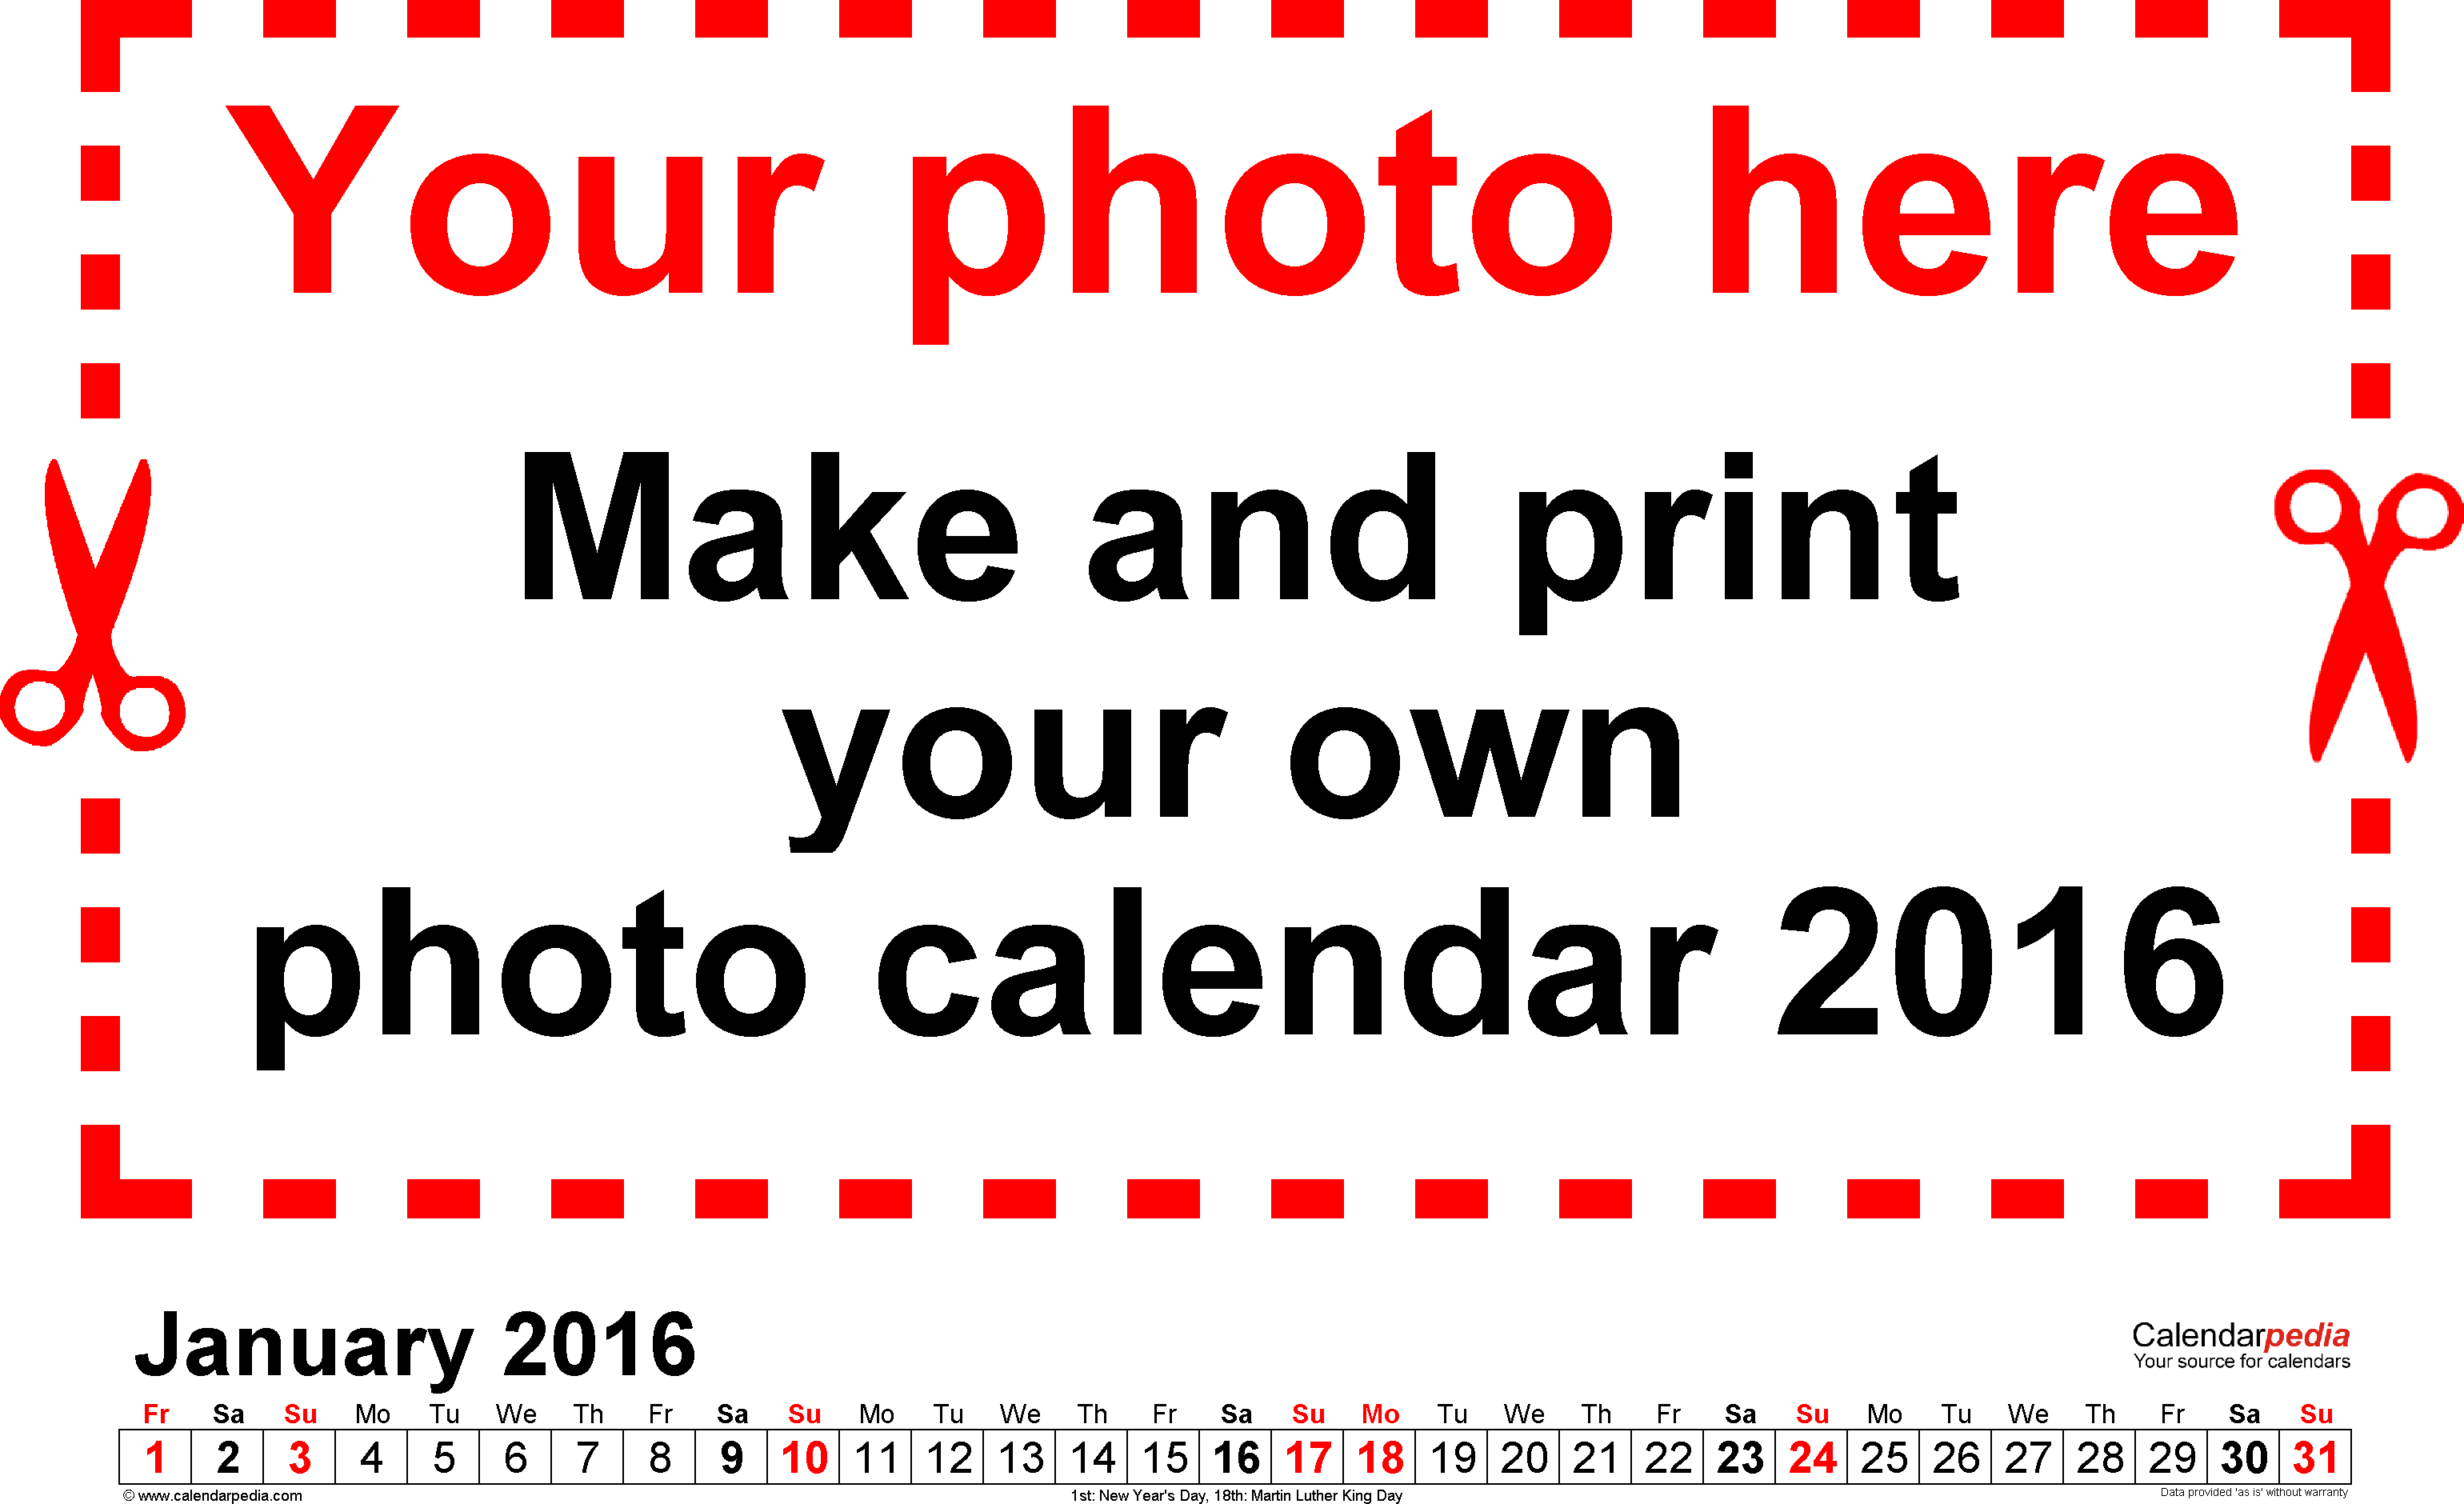 Download Template 5: Photo calendar 2016 for Excel, 12 pages, landscape format